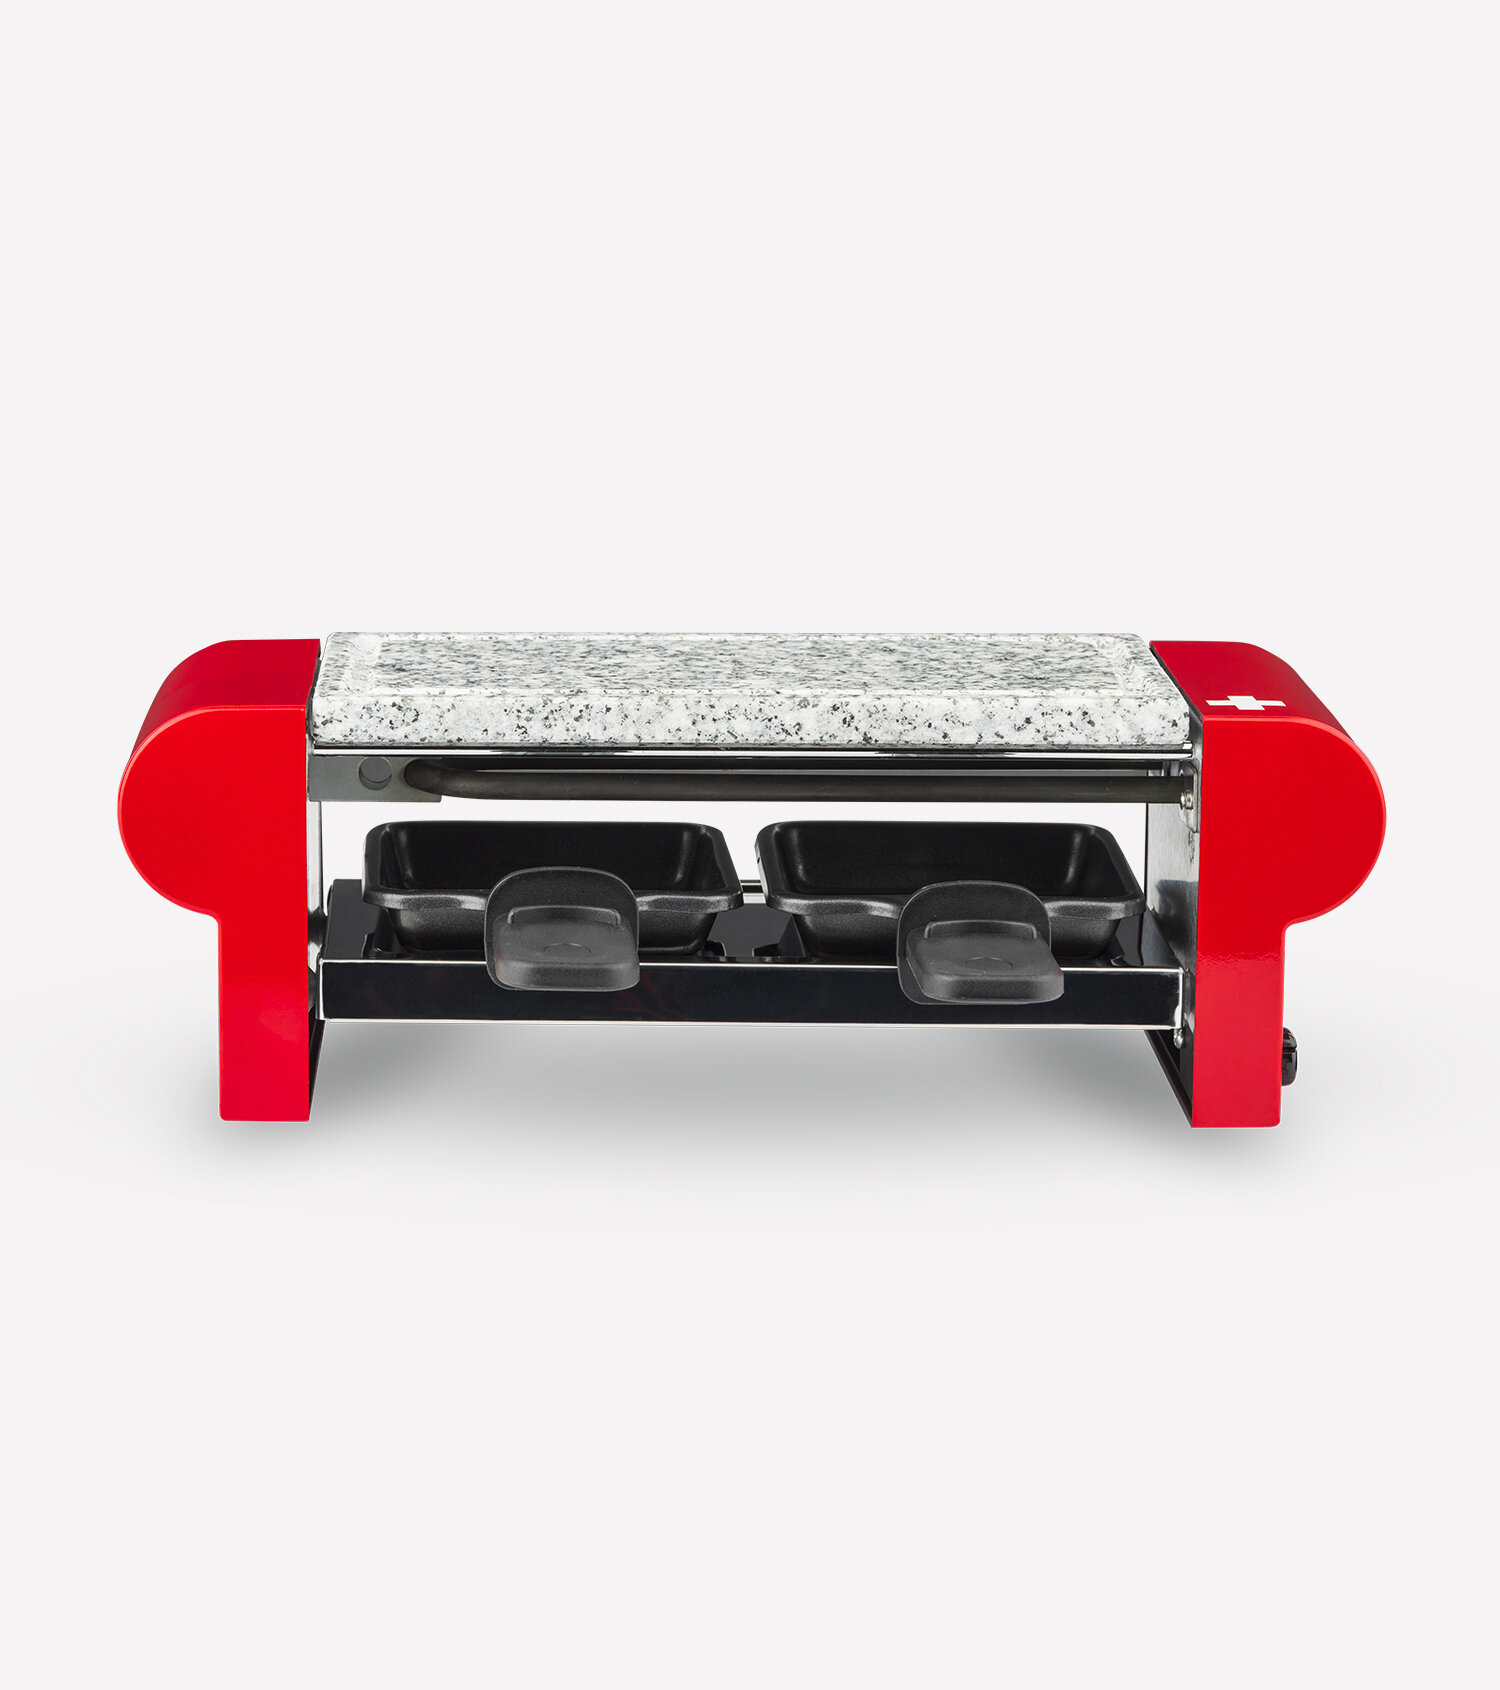 raclette grill 2 persons with granite stone red